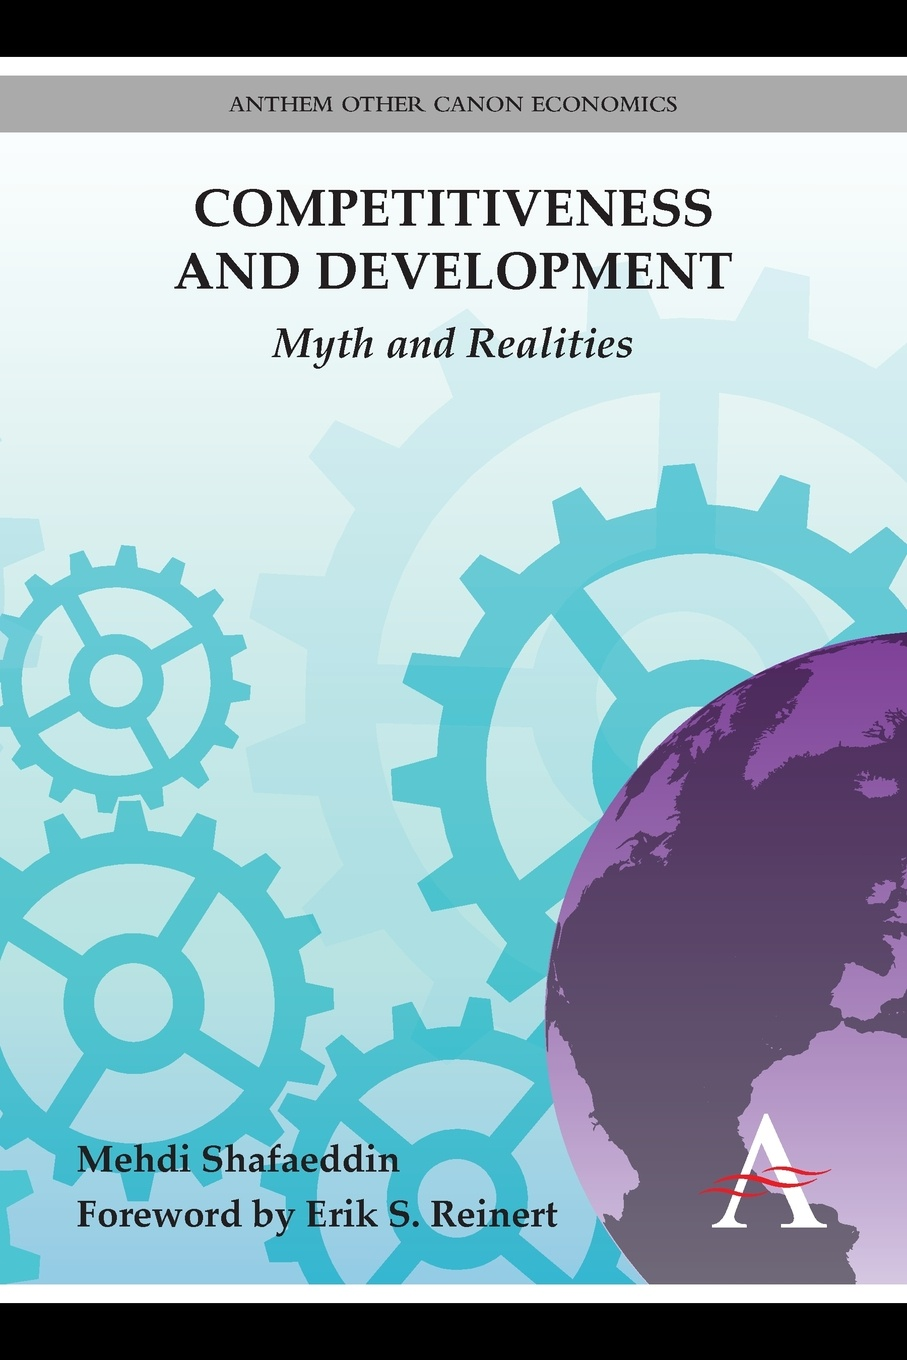 Mehdi Shafaeddin Competitiveness and Development. Myth and Realities piya das and subhrabaran das competitiveness and role of research and development